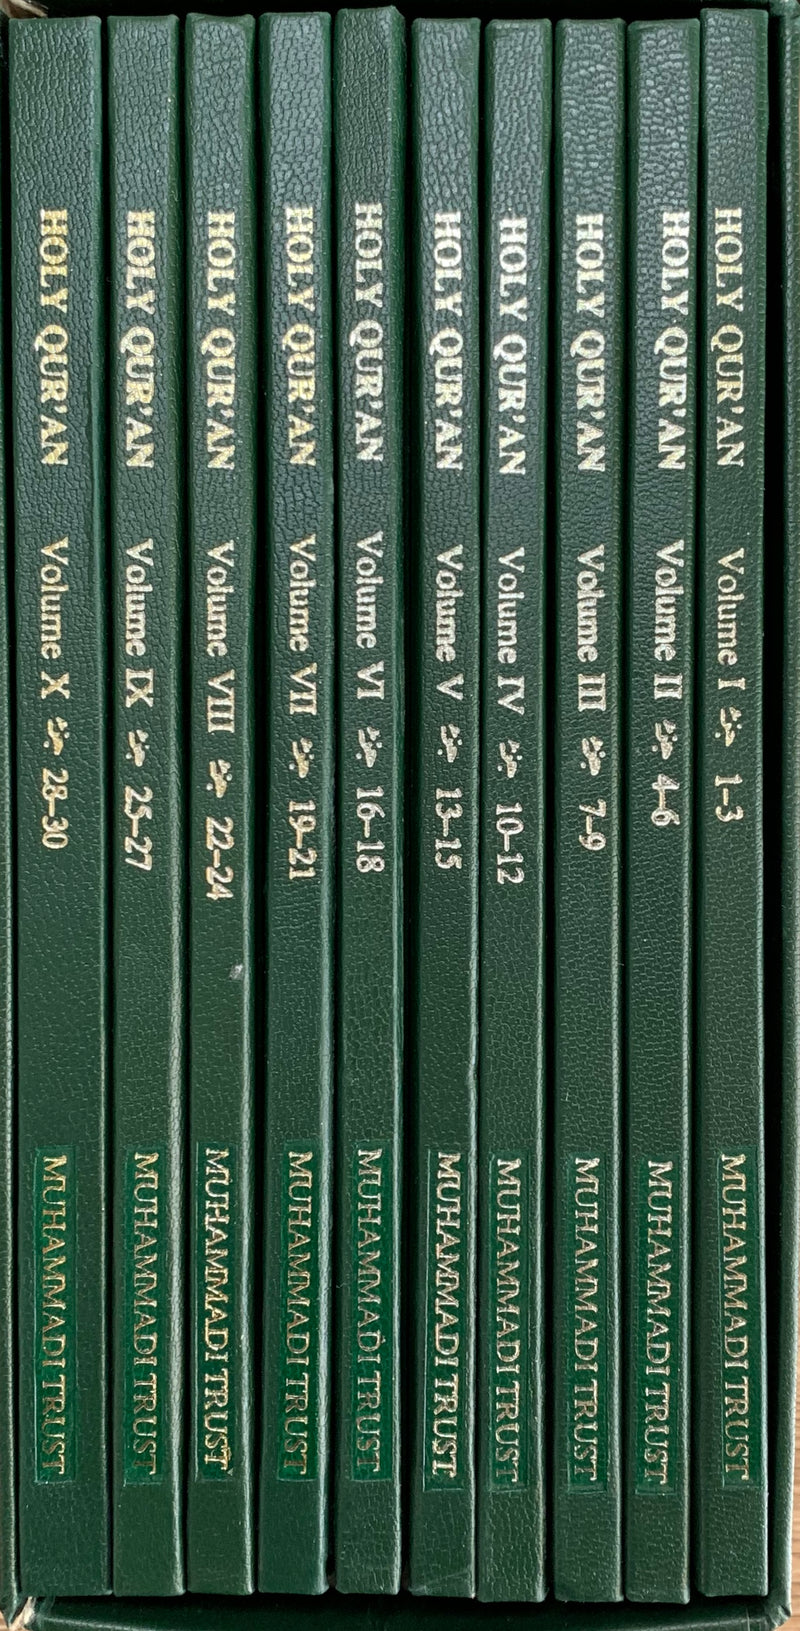 The Holy Quran - Translated by M. H. Shakir (10 volumes)